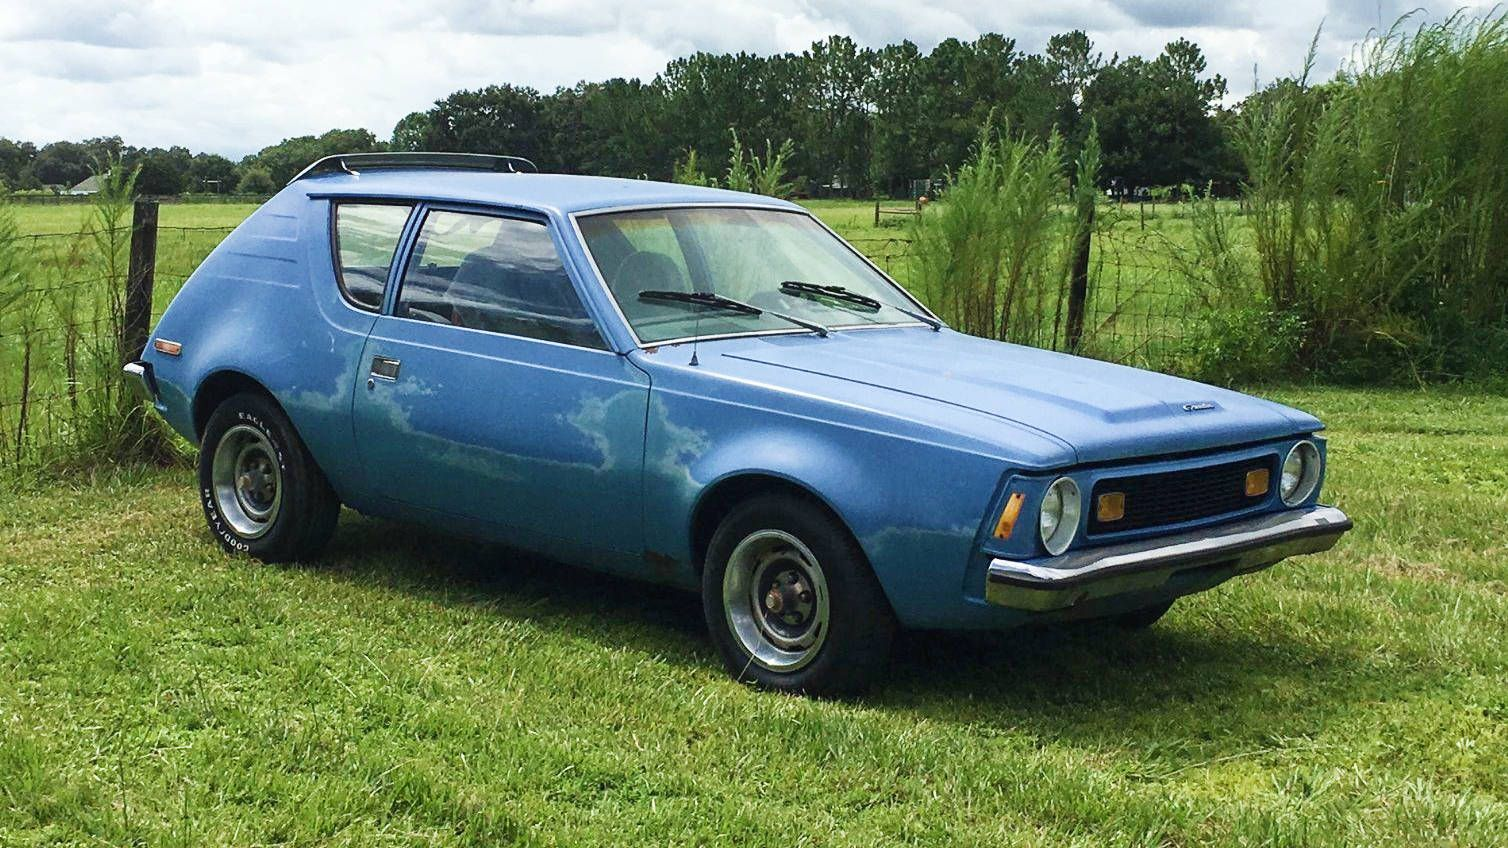 Acid wash denim 1973 amc gremlin x levi edition http acid wash denim 1973 amc gremlin x levi edition httpbarnfinds sciox Image collections